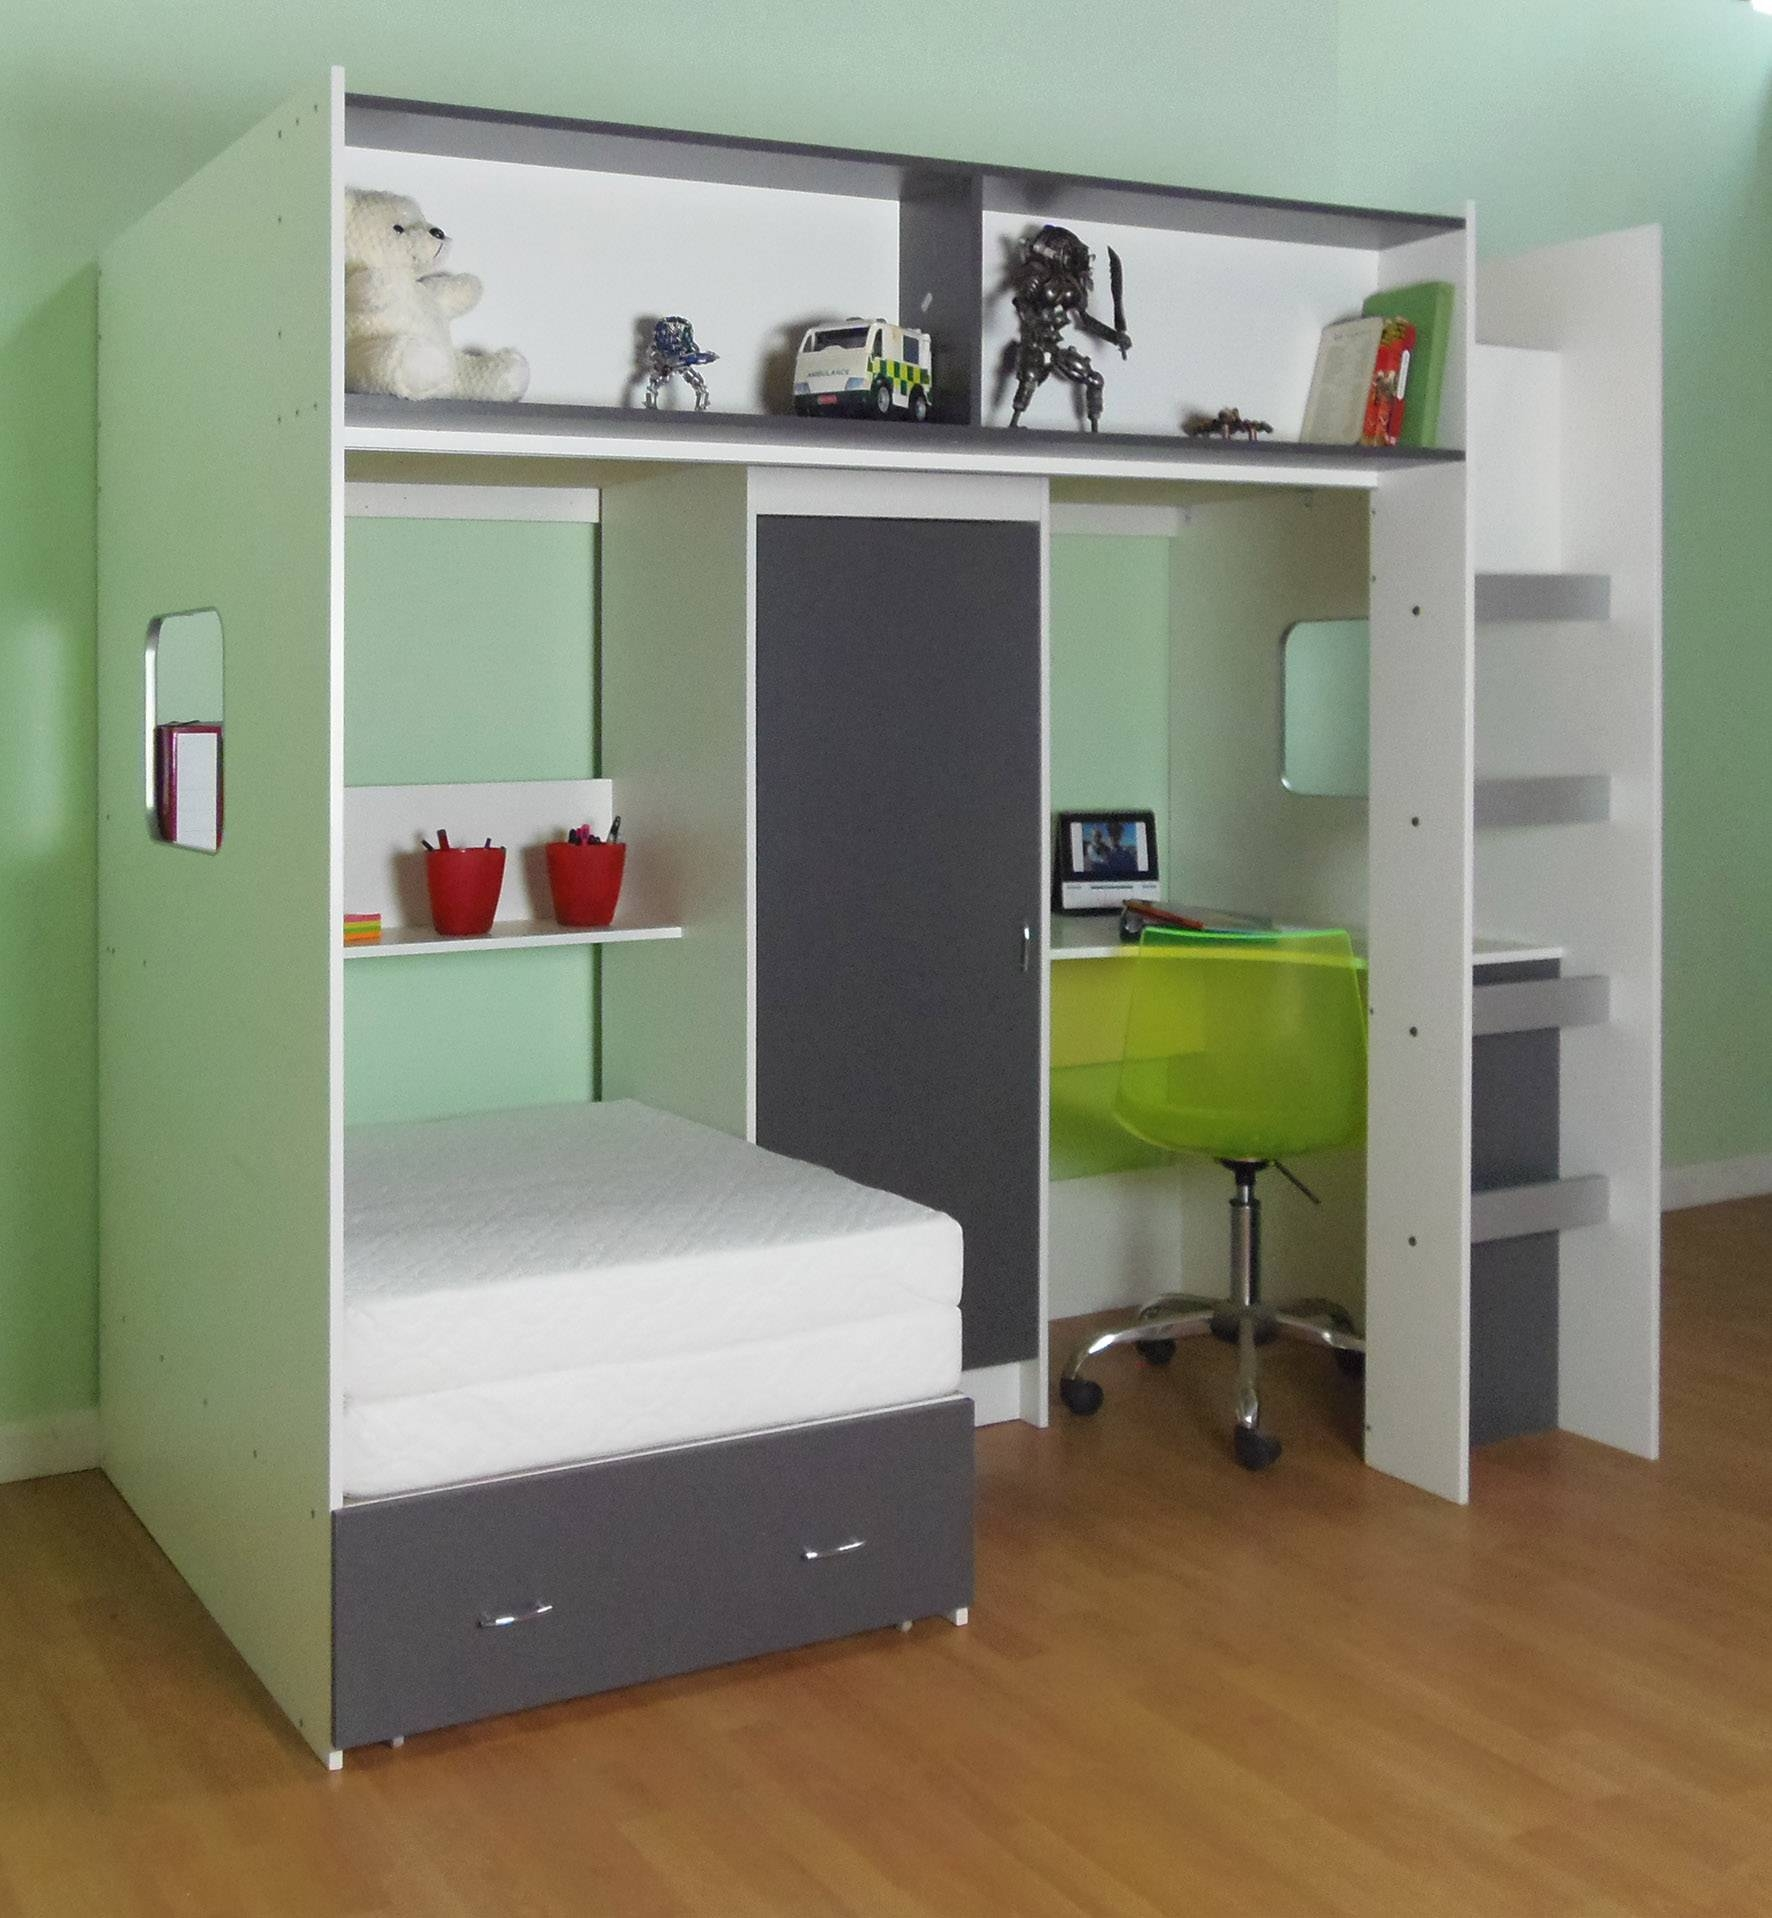 Wooden High Sleeper Bed With Desk And Futon | Roselawnlutheran inside High Sleeper Wardrobes (Image 15 of 15)